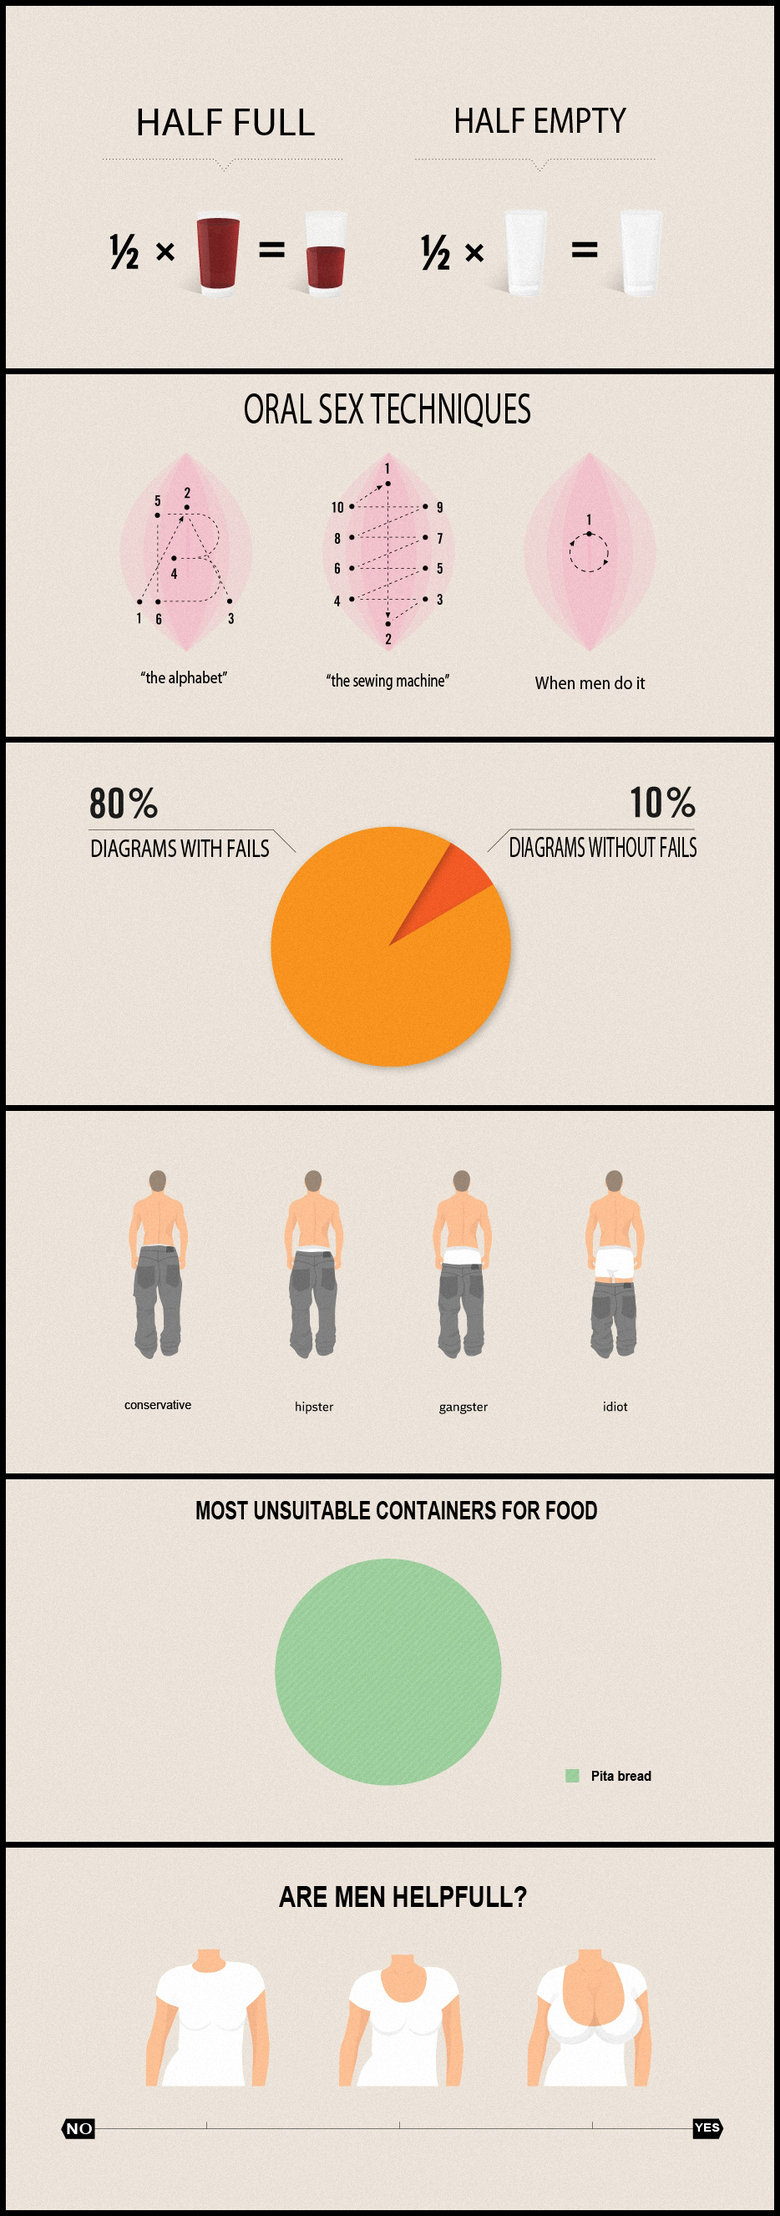 True Facts. tags are a lie. HALF FULL HALF EMPTY ORAL SEX TECHNIQUES machine' When men do it DIAGRAMS WITH FAILS N. A' DIAGRAMS FAILS MOST UNSUITABLE CONTAINERS